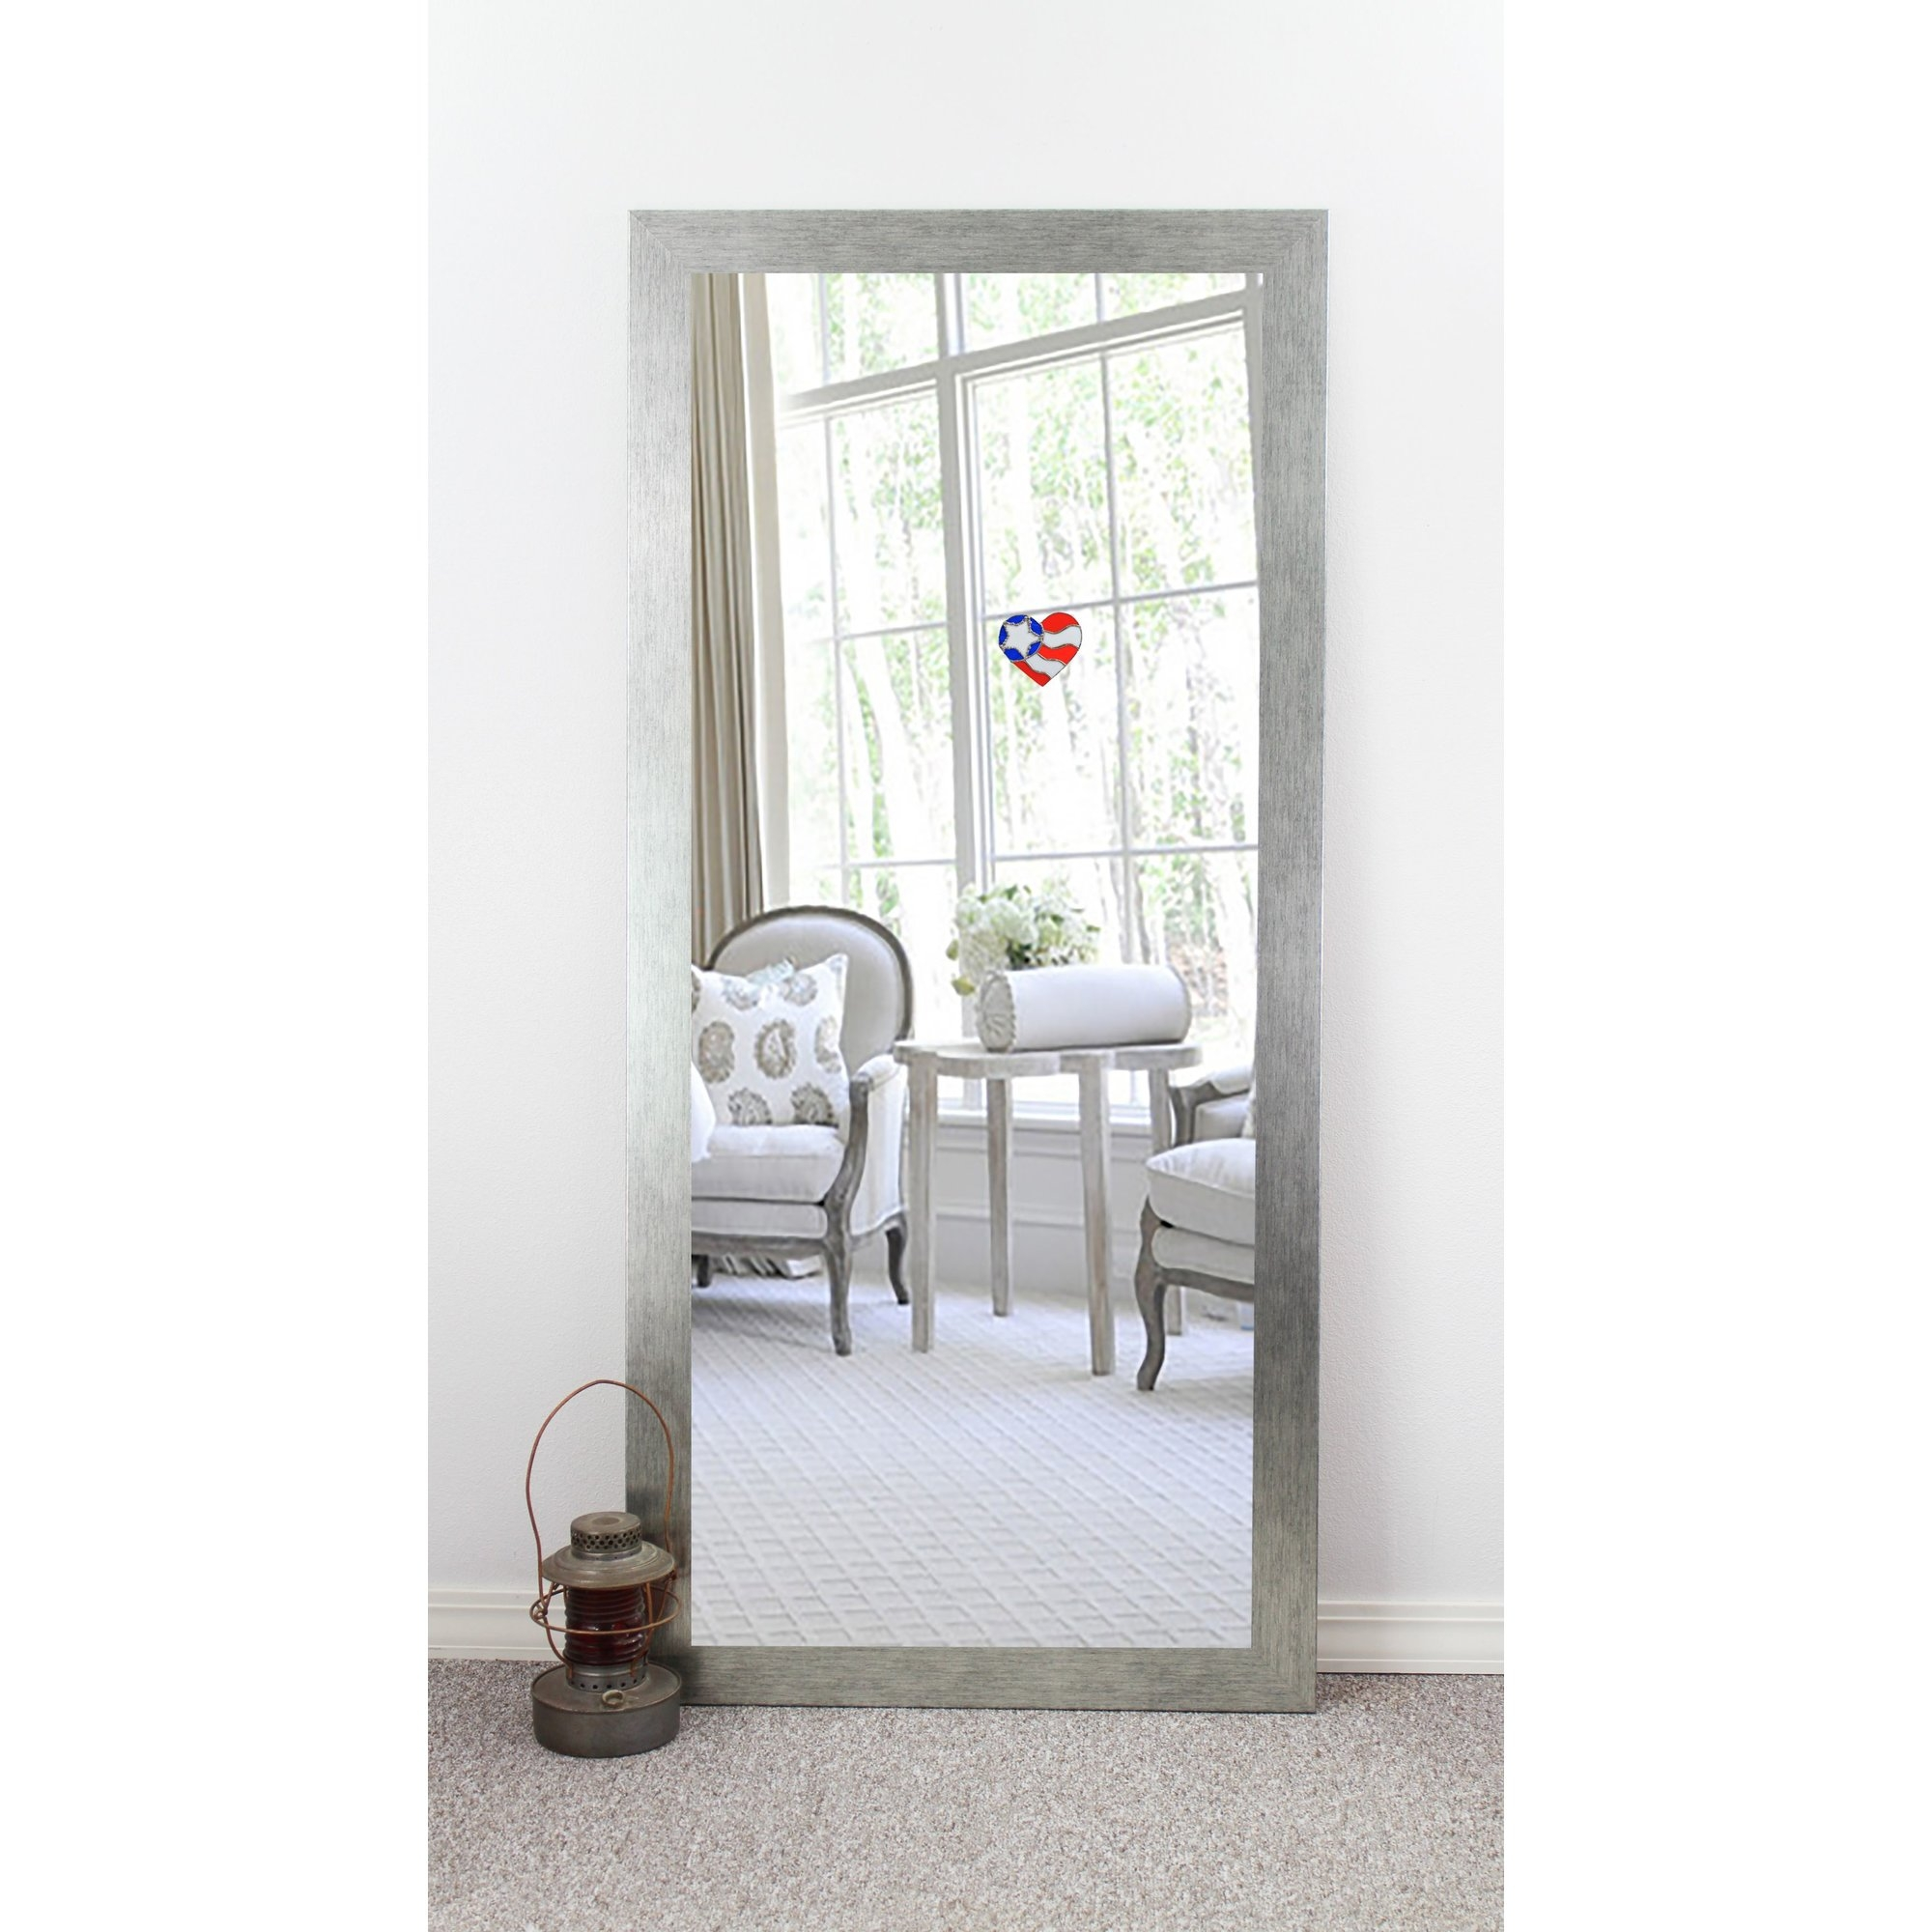 Modern Contemporary Floor Mirrors Youll Love Wayfair Inside Contemporary Floor Standing Mirrors (Image 12 of 15)